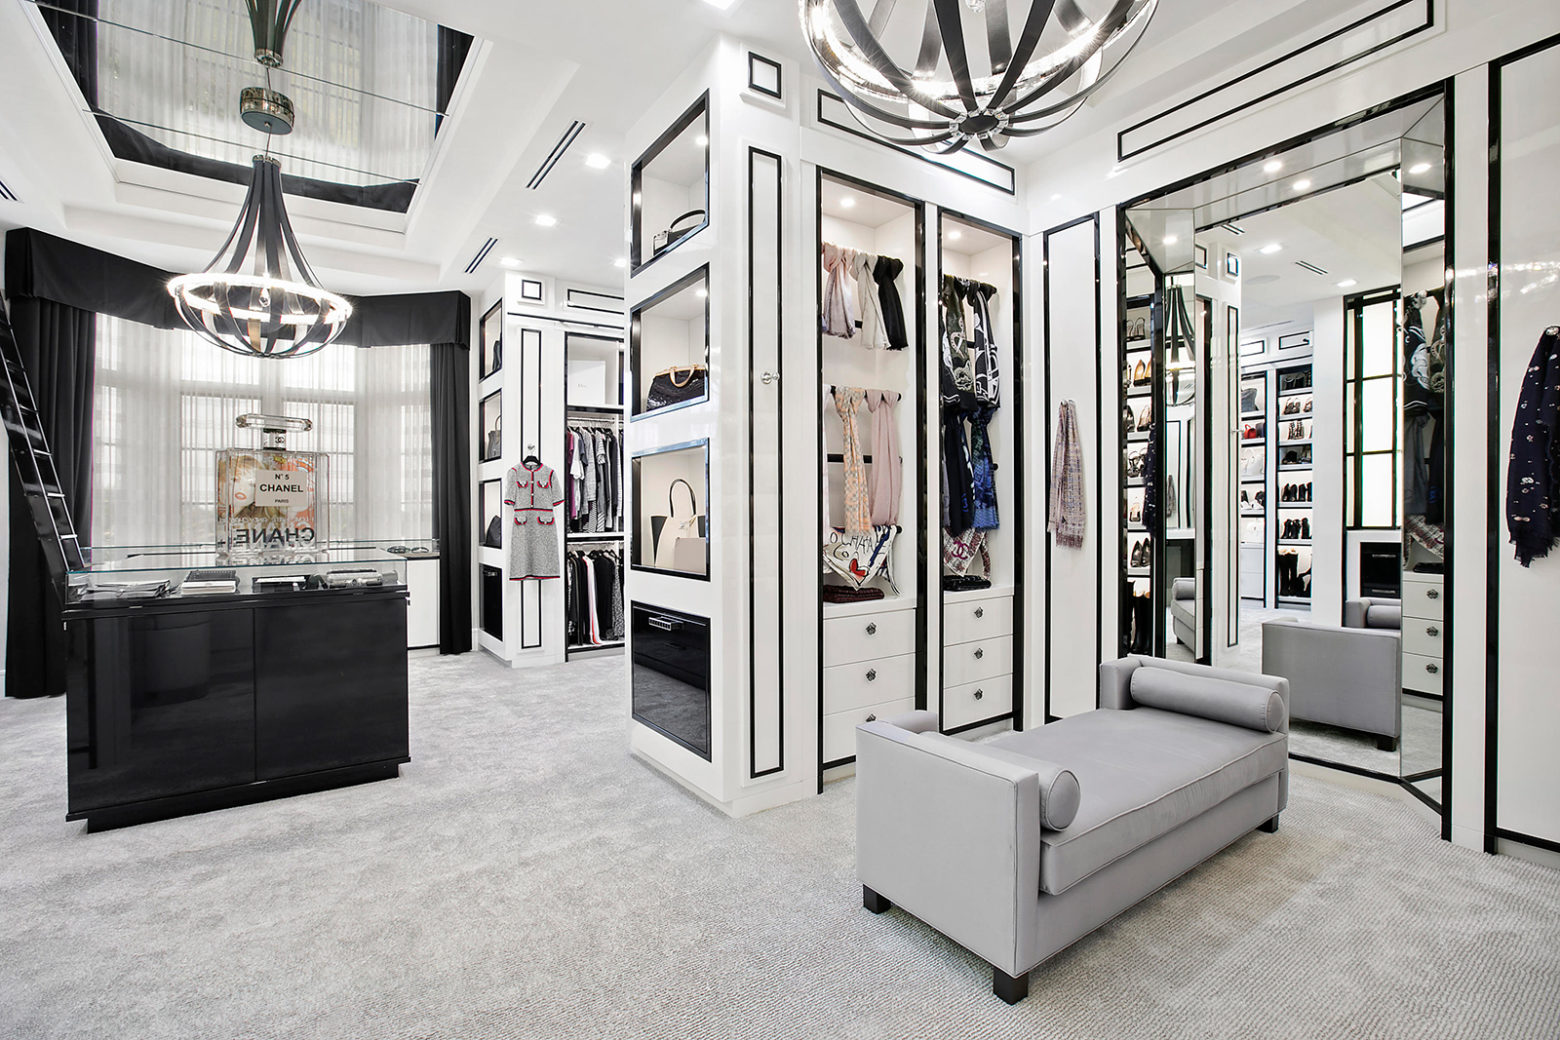 Wondrous Walk In Wardrobes To Envy Iconic Life